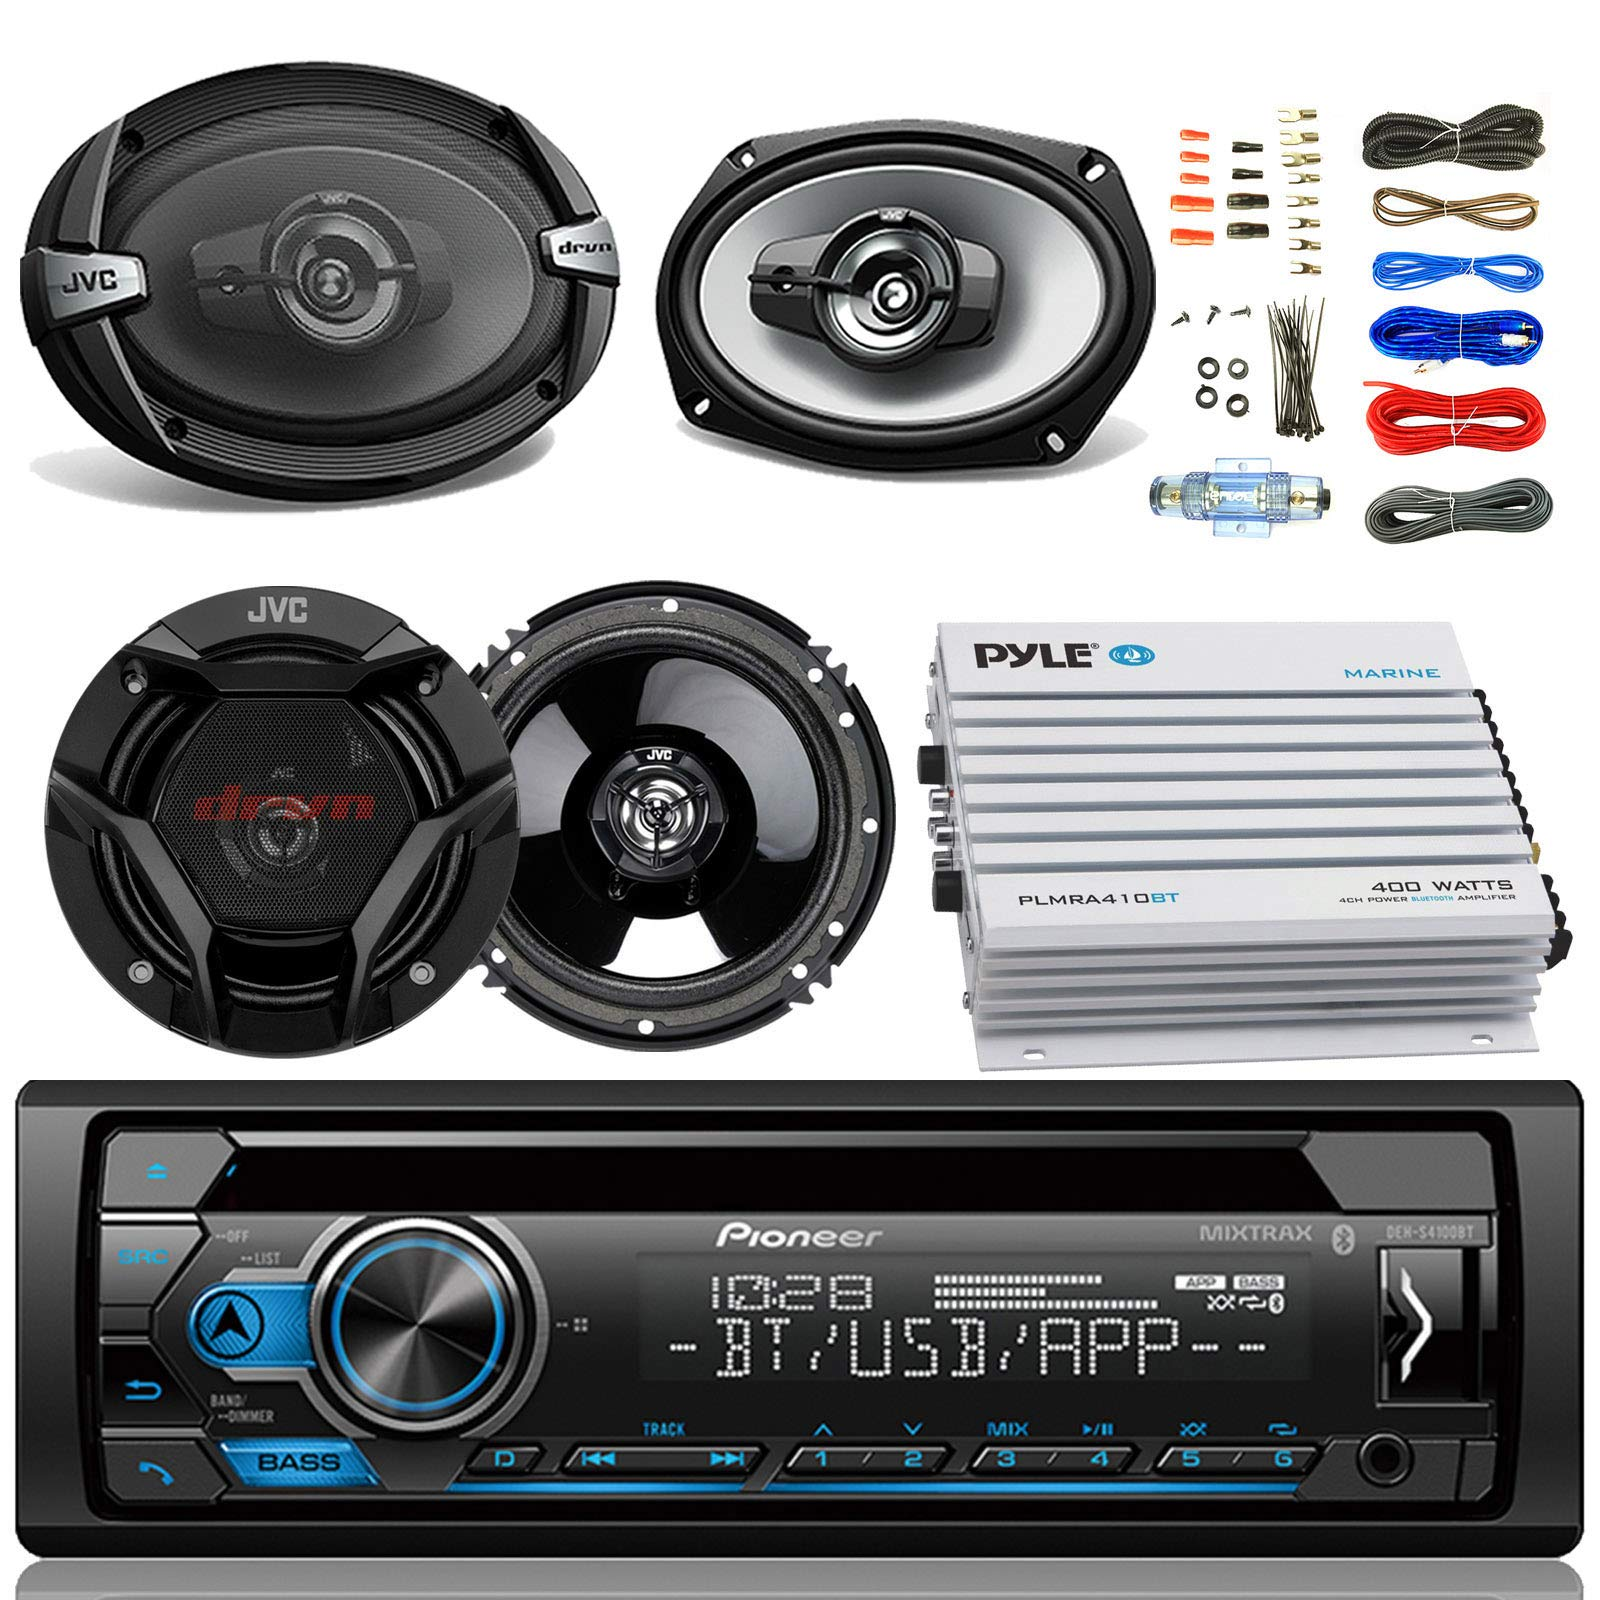 Pioneer DEH-S4100BT Car Bluetooth Radio USB AUX CD Player Receiver - Bundle Combo with 2X JVC 6x9 3-Way Vehicle Coaxial Speakers + 2X 6.5 Inch 2-Way Audio Speakers + 4-Channel Amplifier + Amp Kit